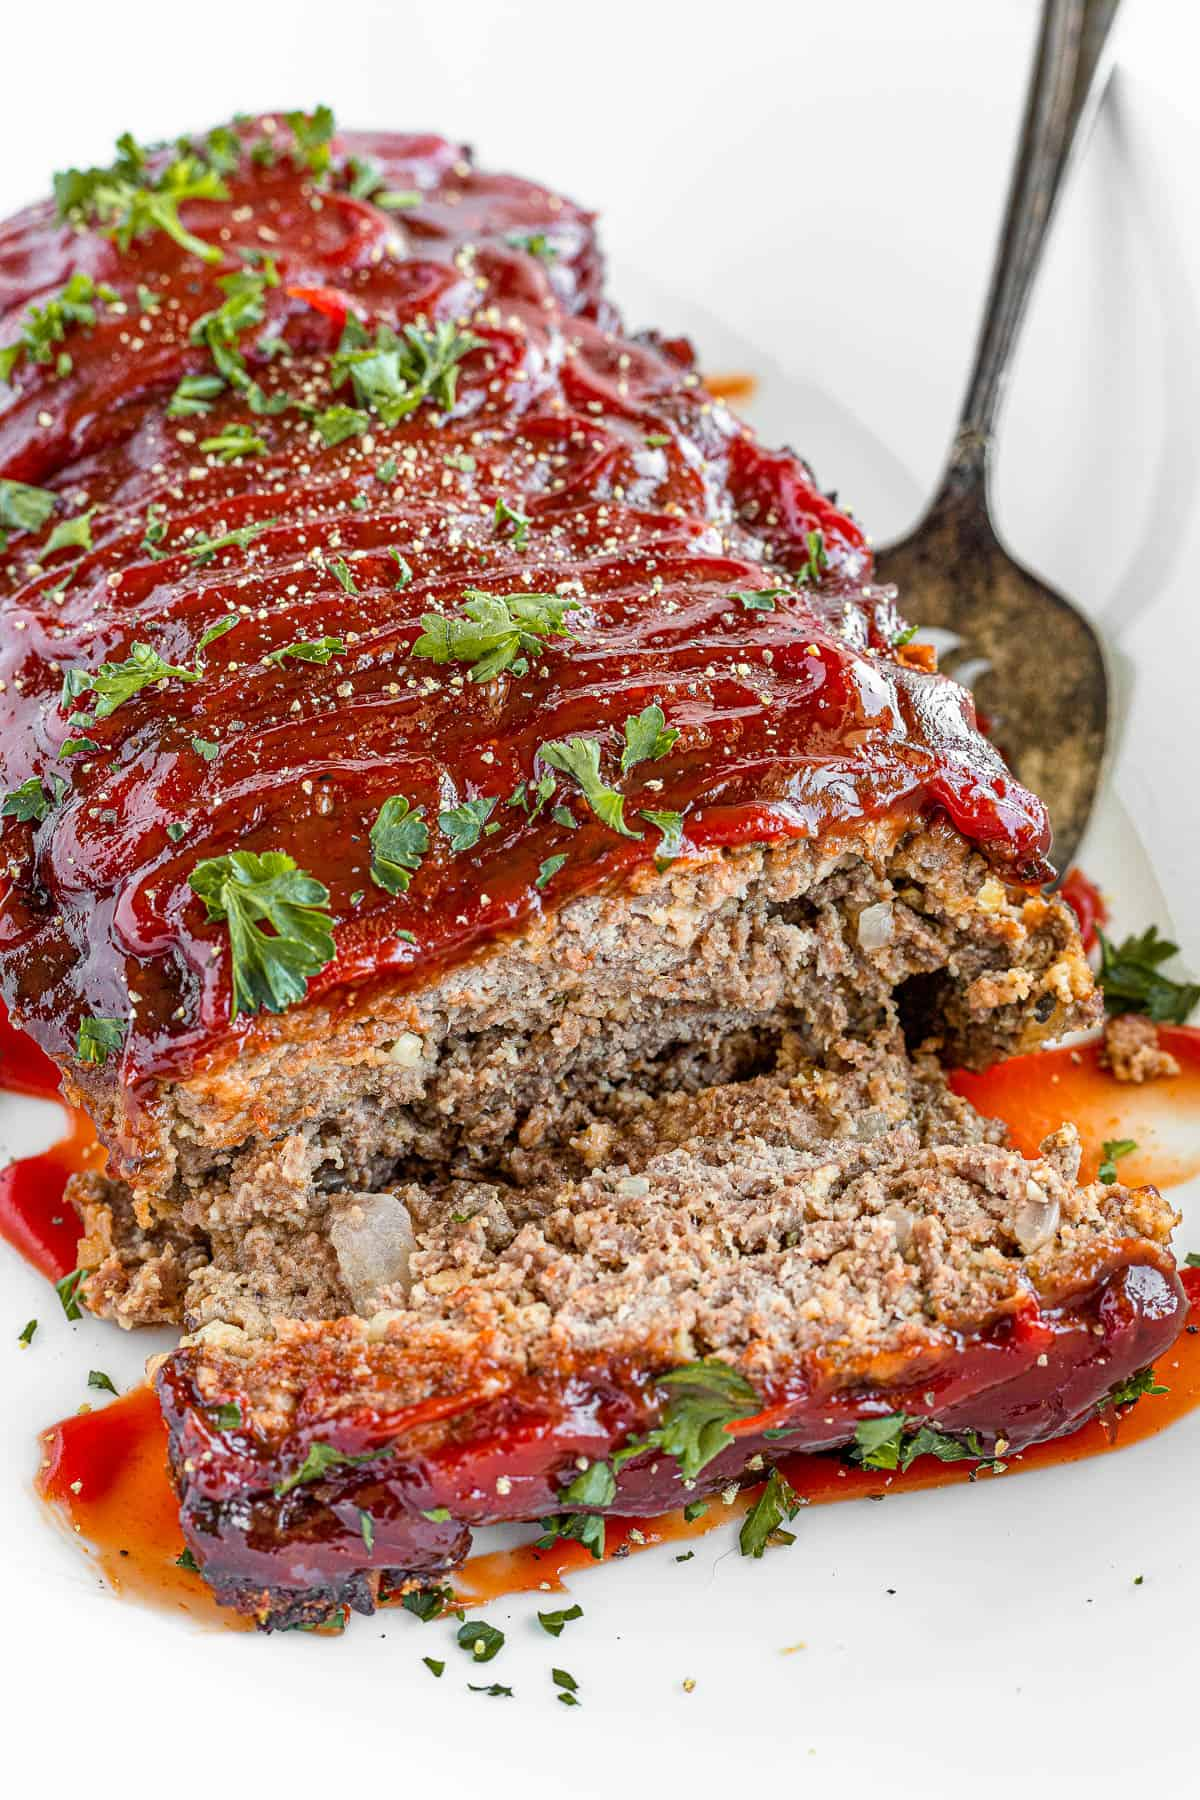 A Plate Full of Meatloaf with One Slice Removed